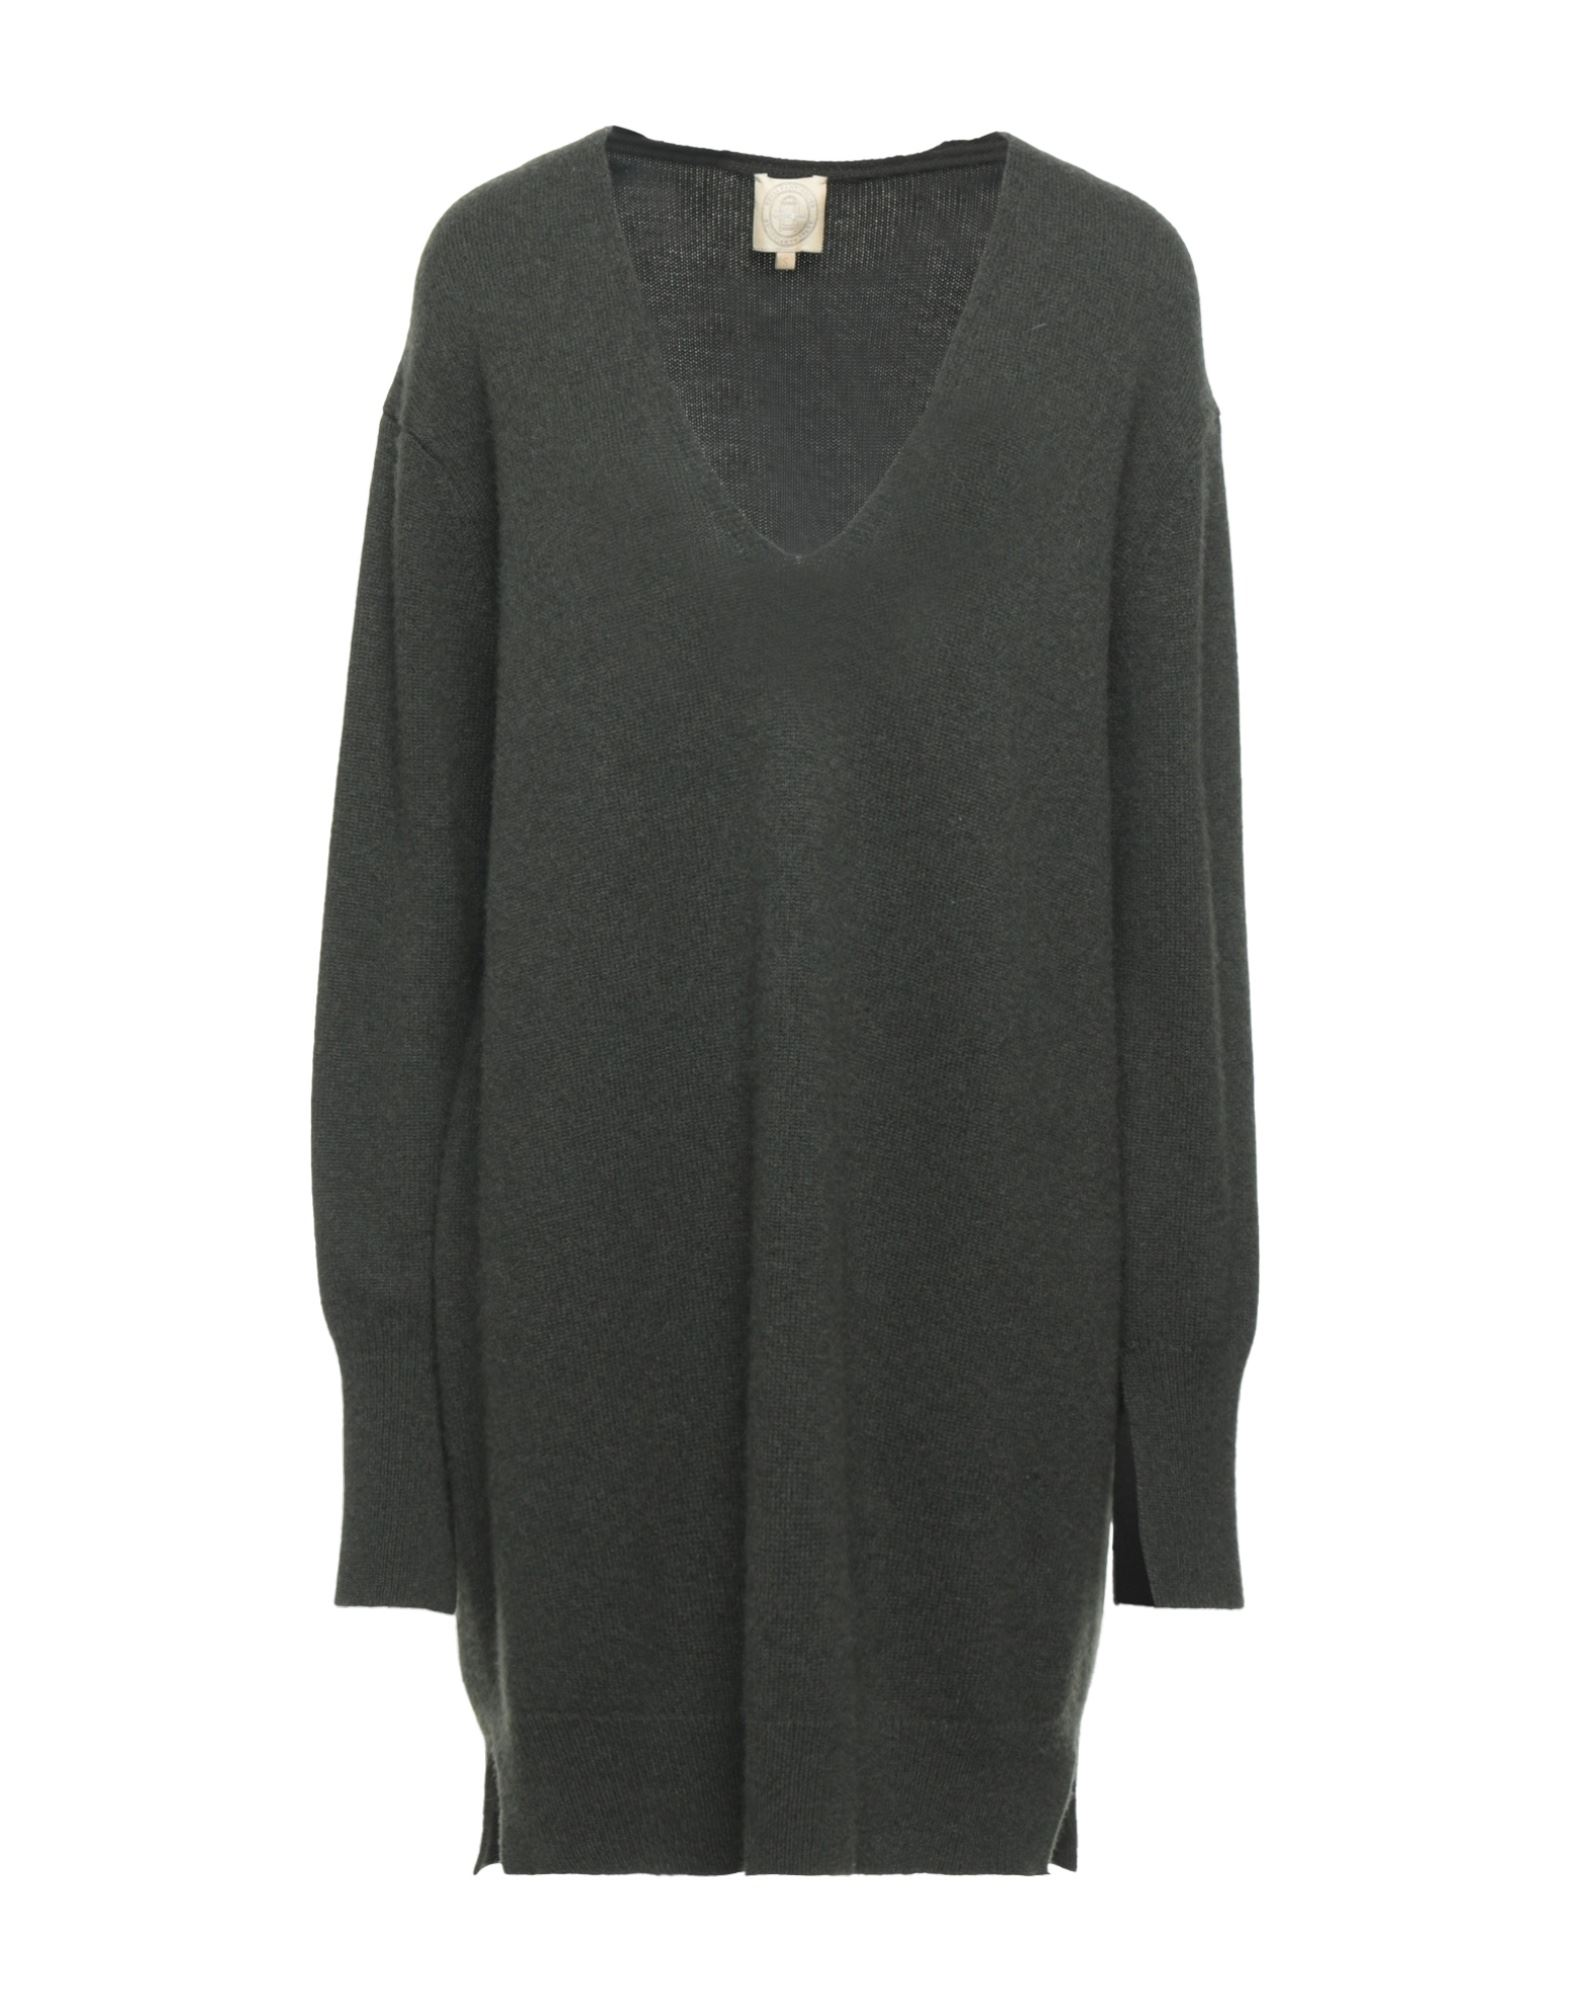 Hotel Particulier Sweaters In Black